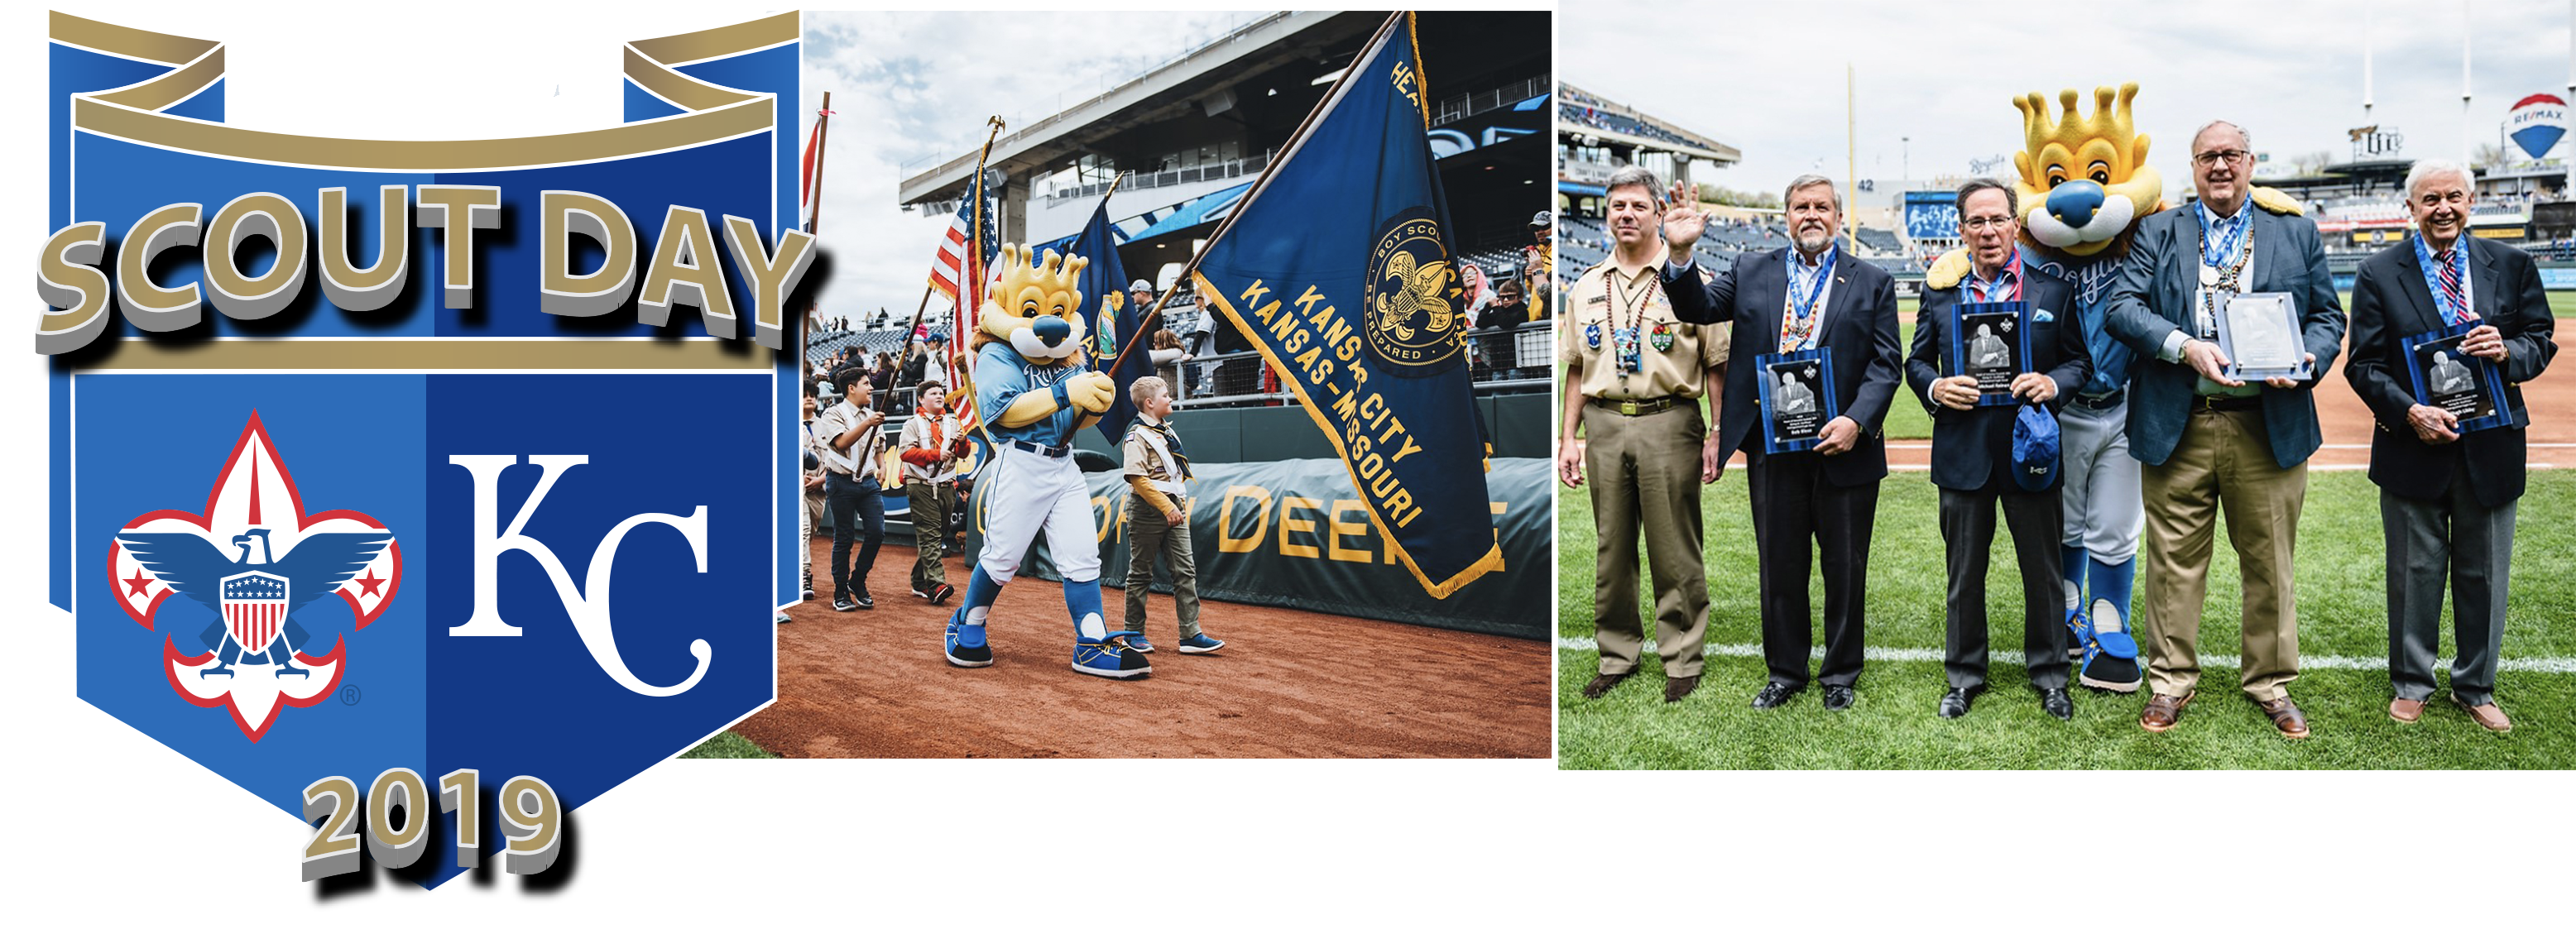 Scout Day at the 'K' — Heart of America Council — Boy Scouts of